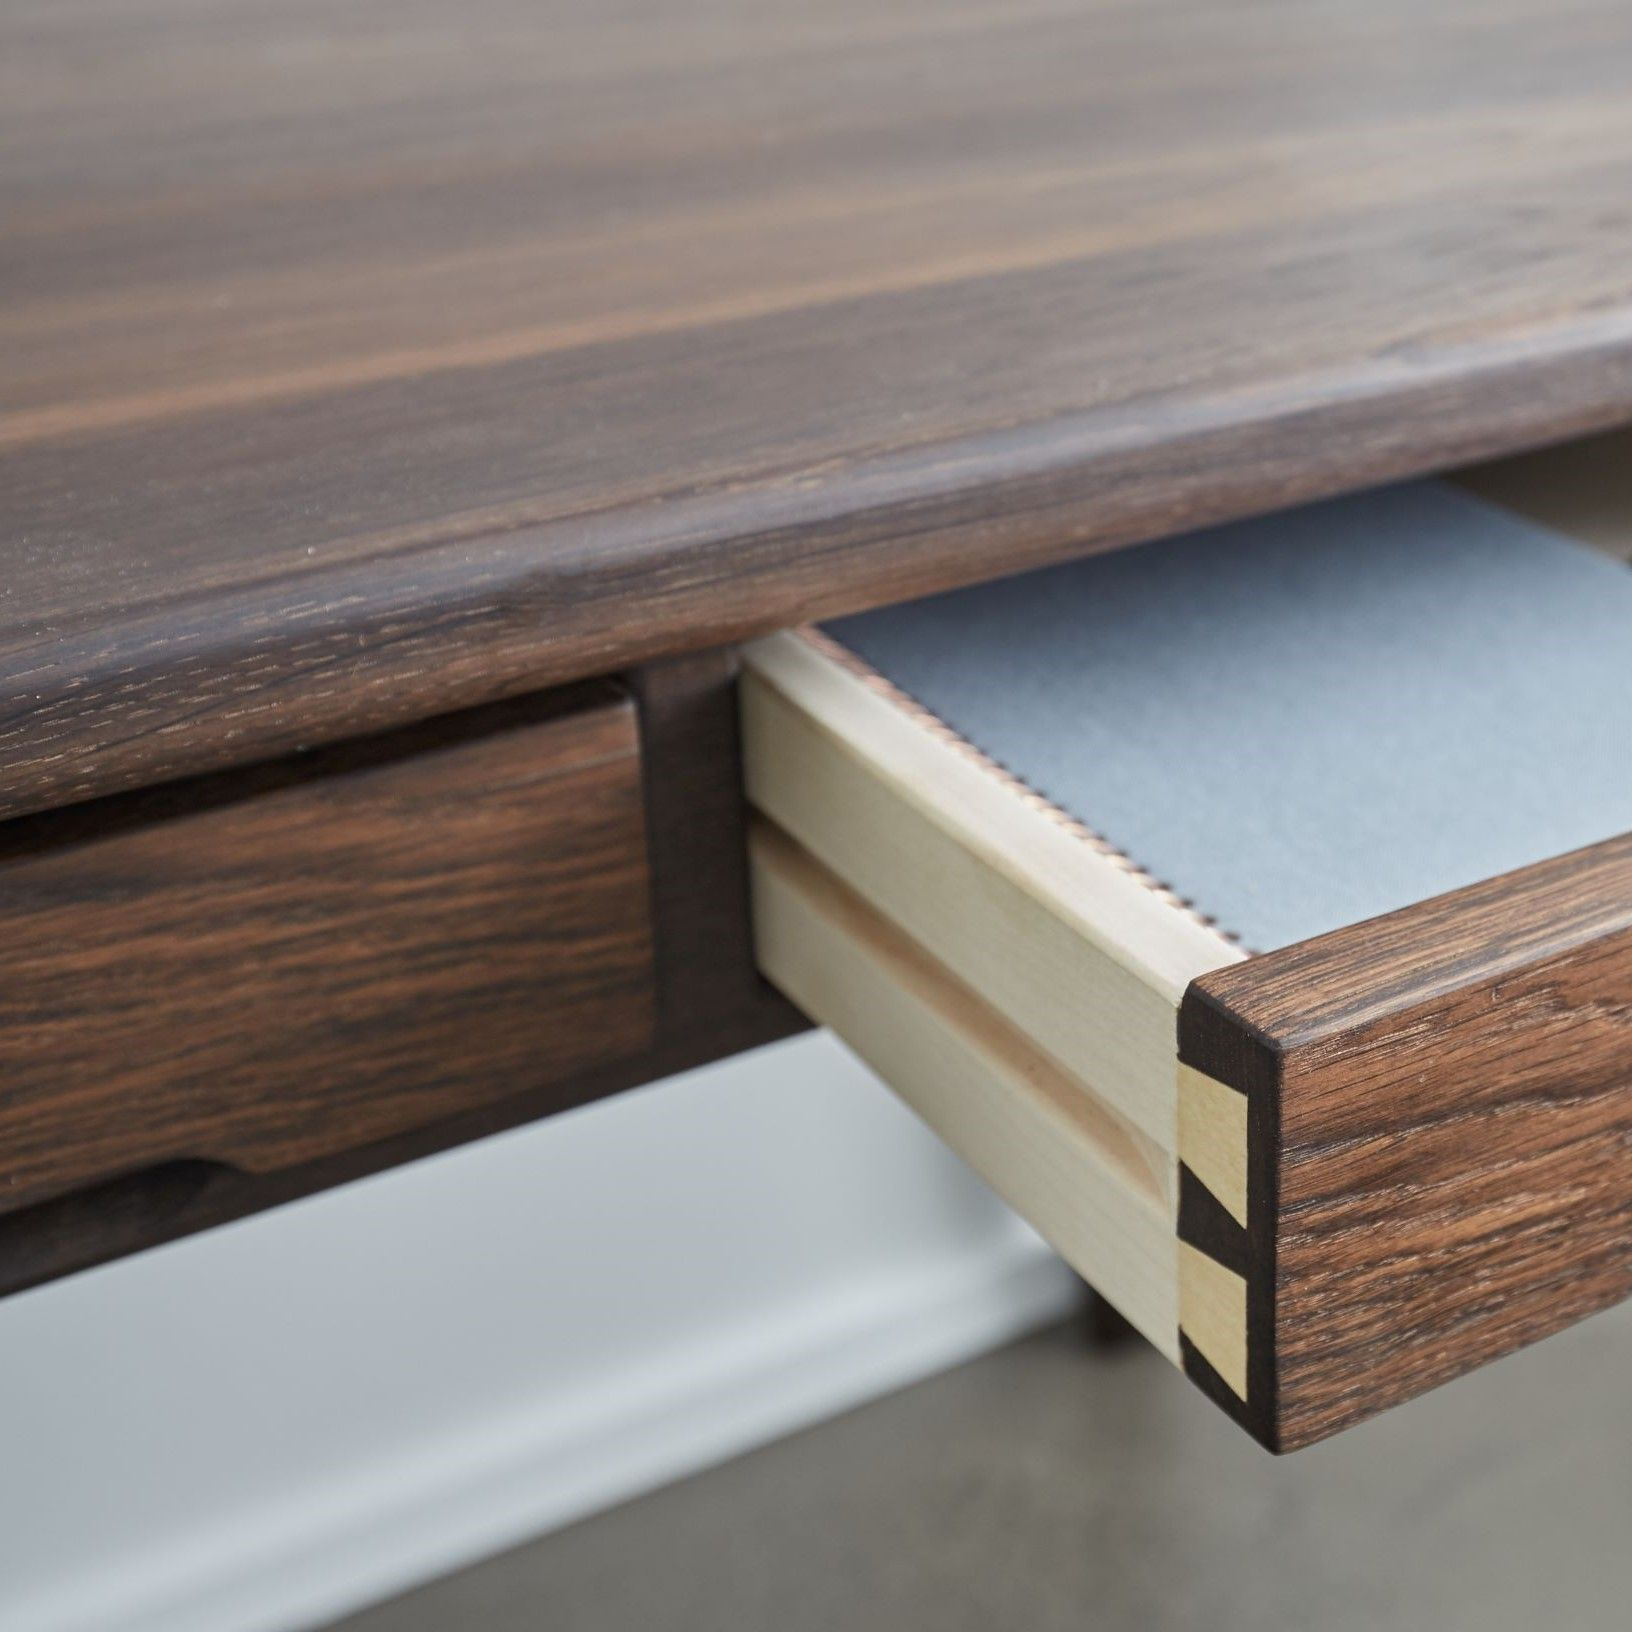 Duusmoeller_Norell_Desk_smoked_oak_oil_Detail_Drawer